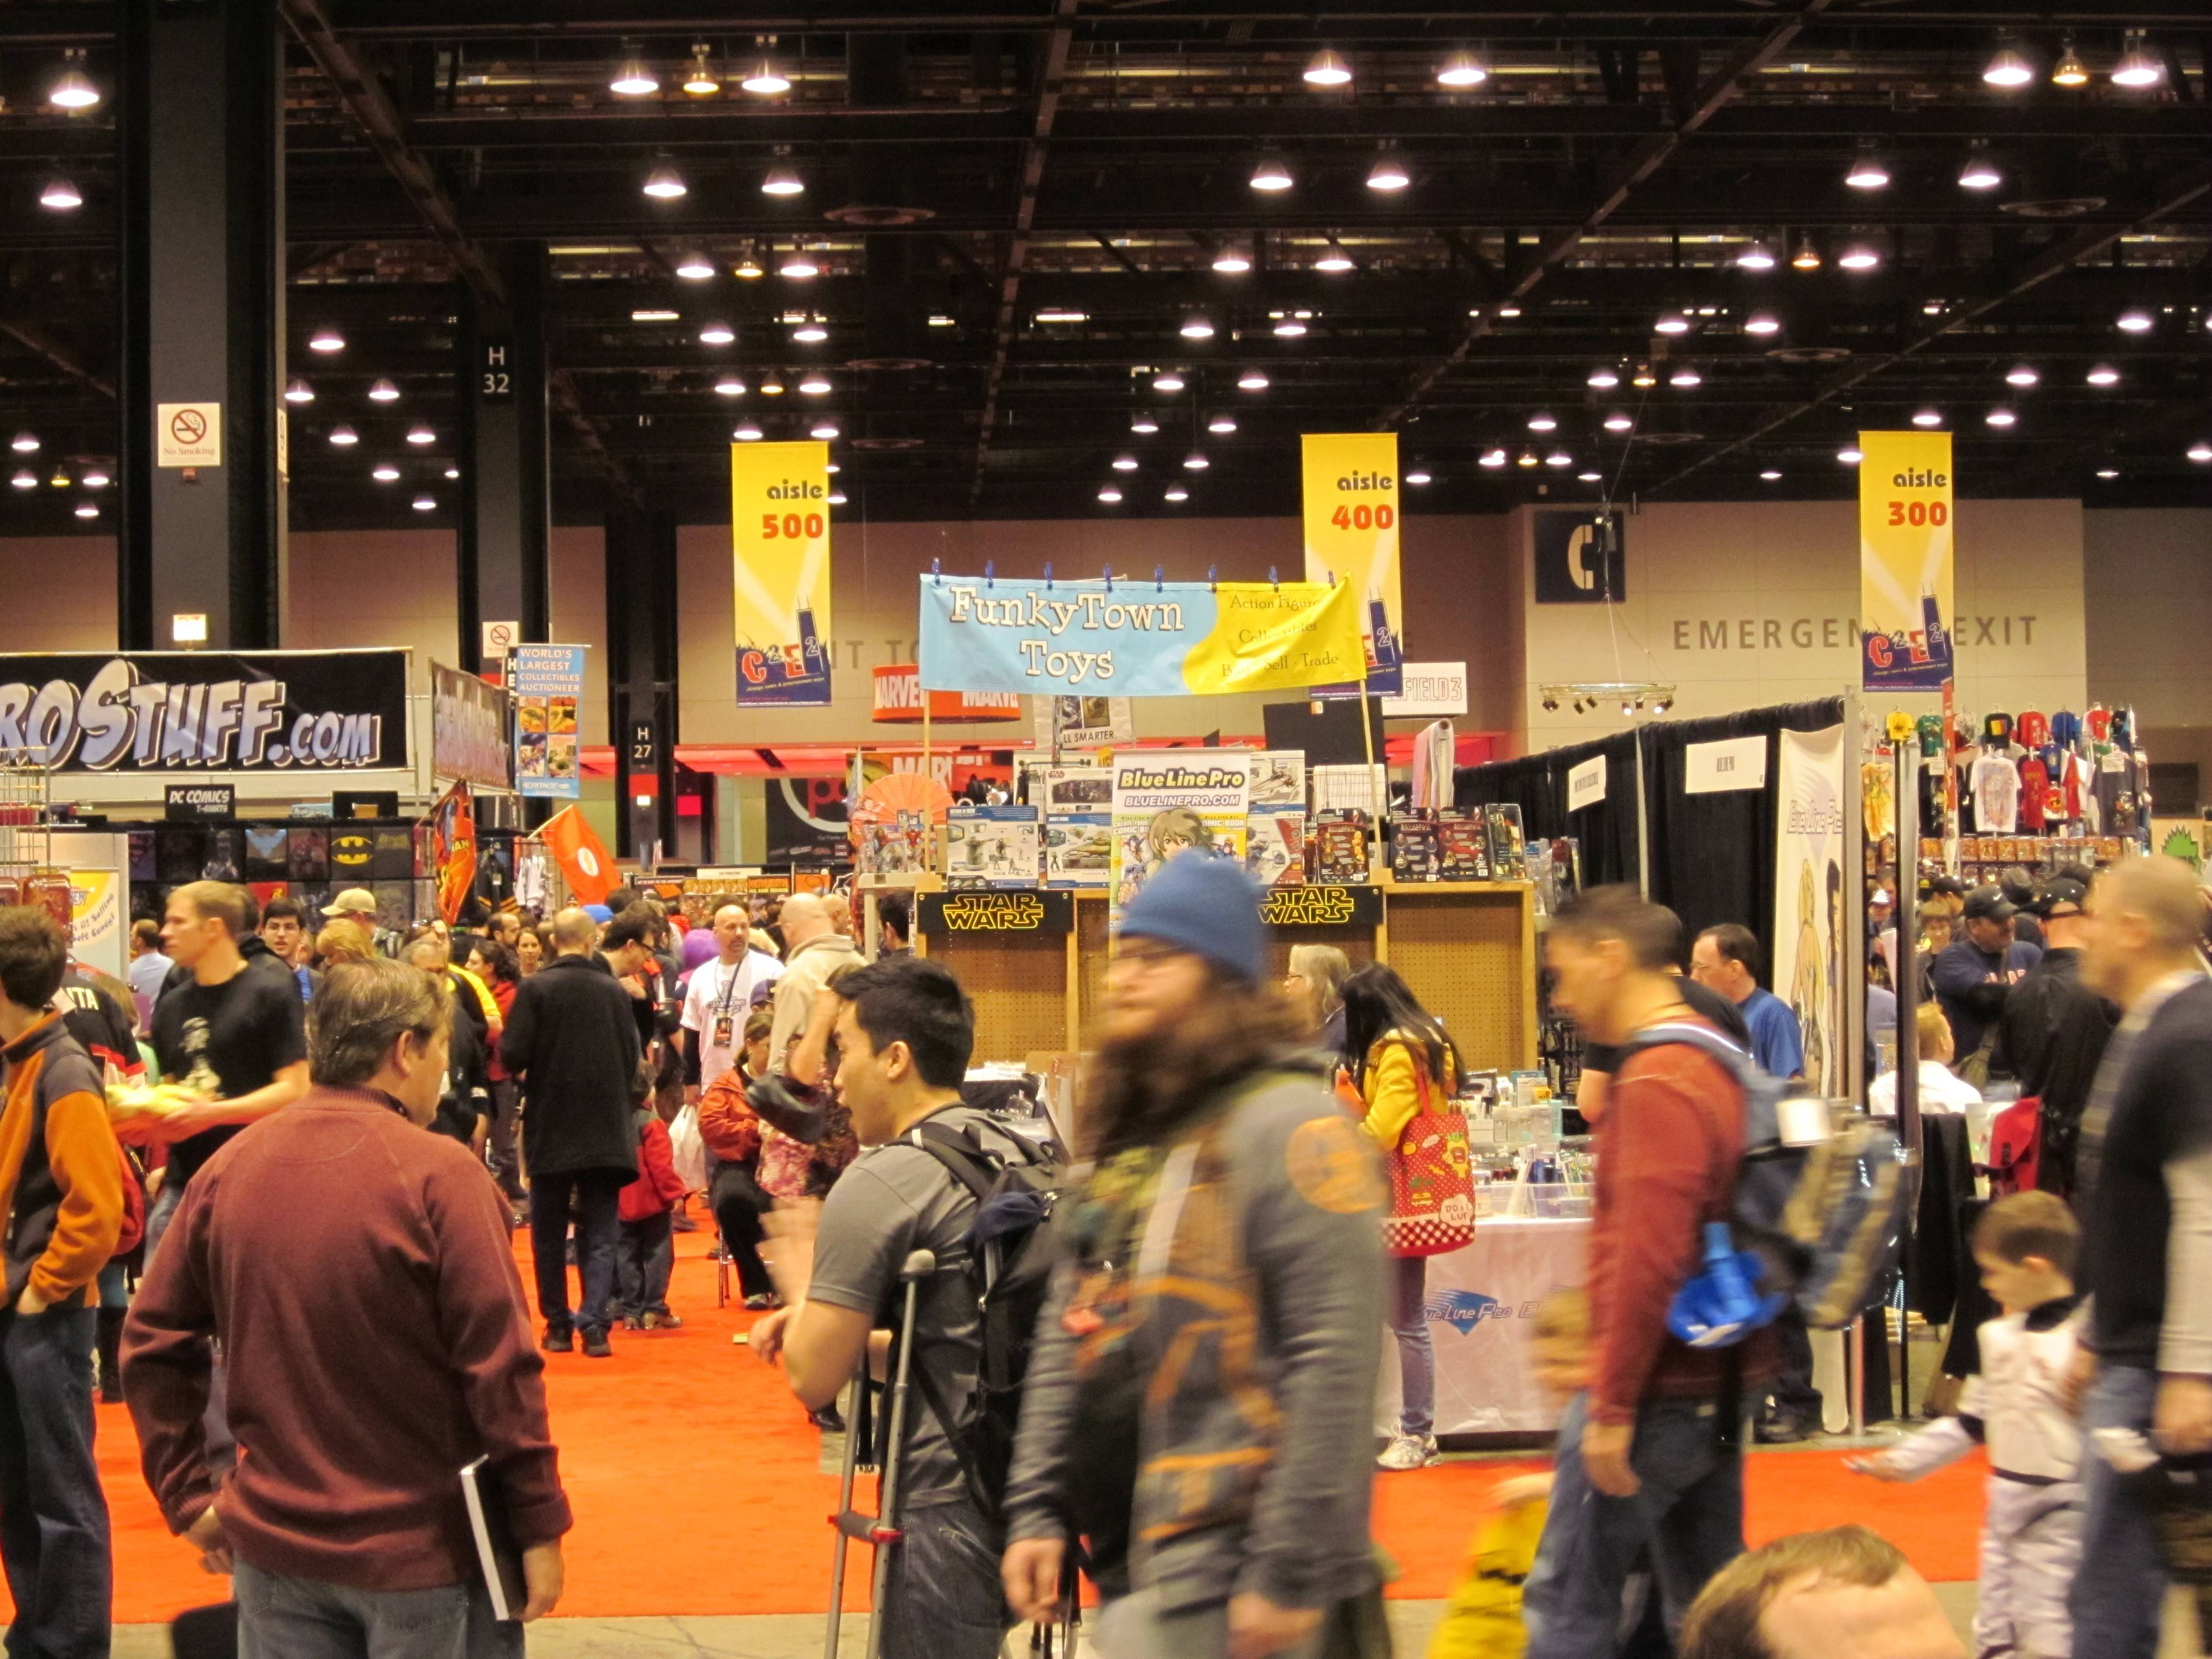 The Chicago Comics and Entertainment Expo, or C2E2, will bring thousands of comics, television and pop-culture fans from all over the suburbs to Chicago this weekend.